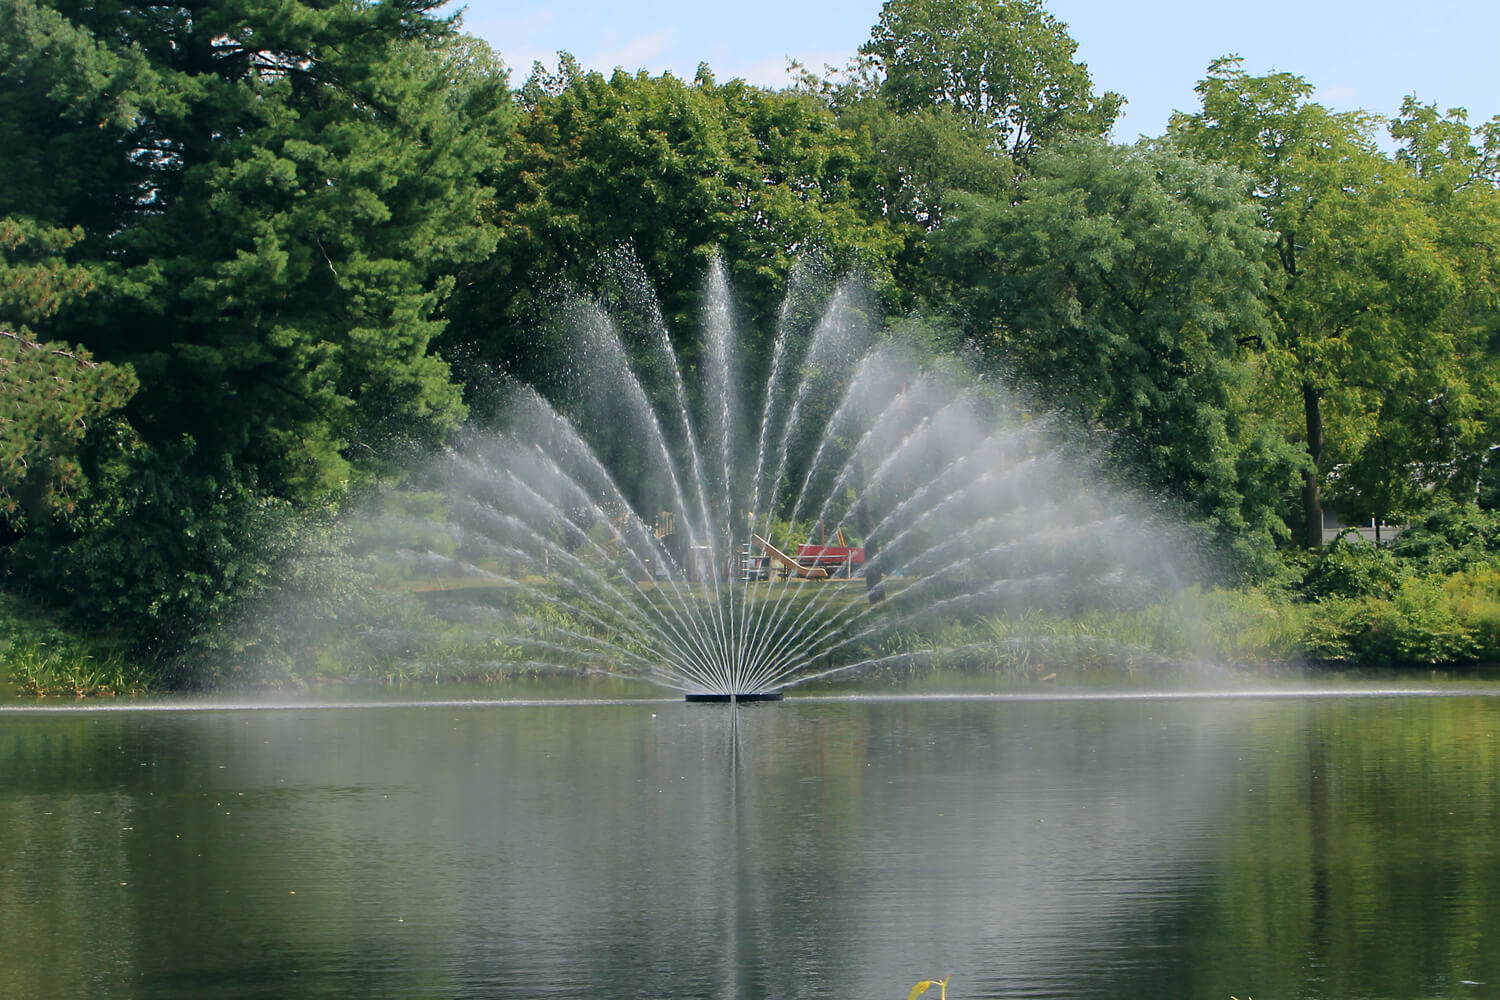 One of Otterbine's Aries Giant Aerating Fountains